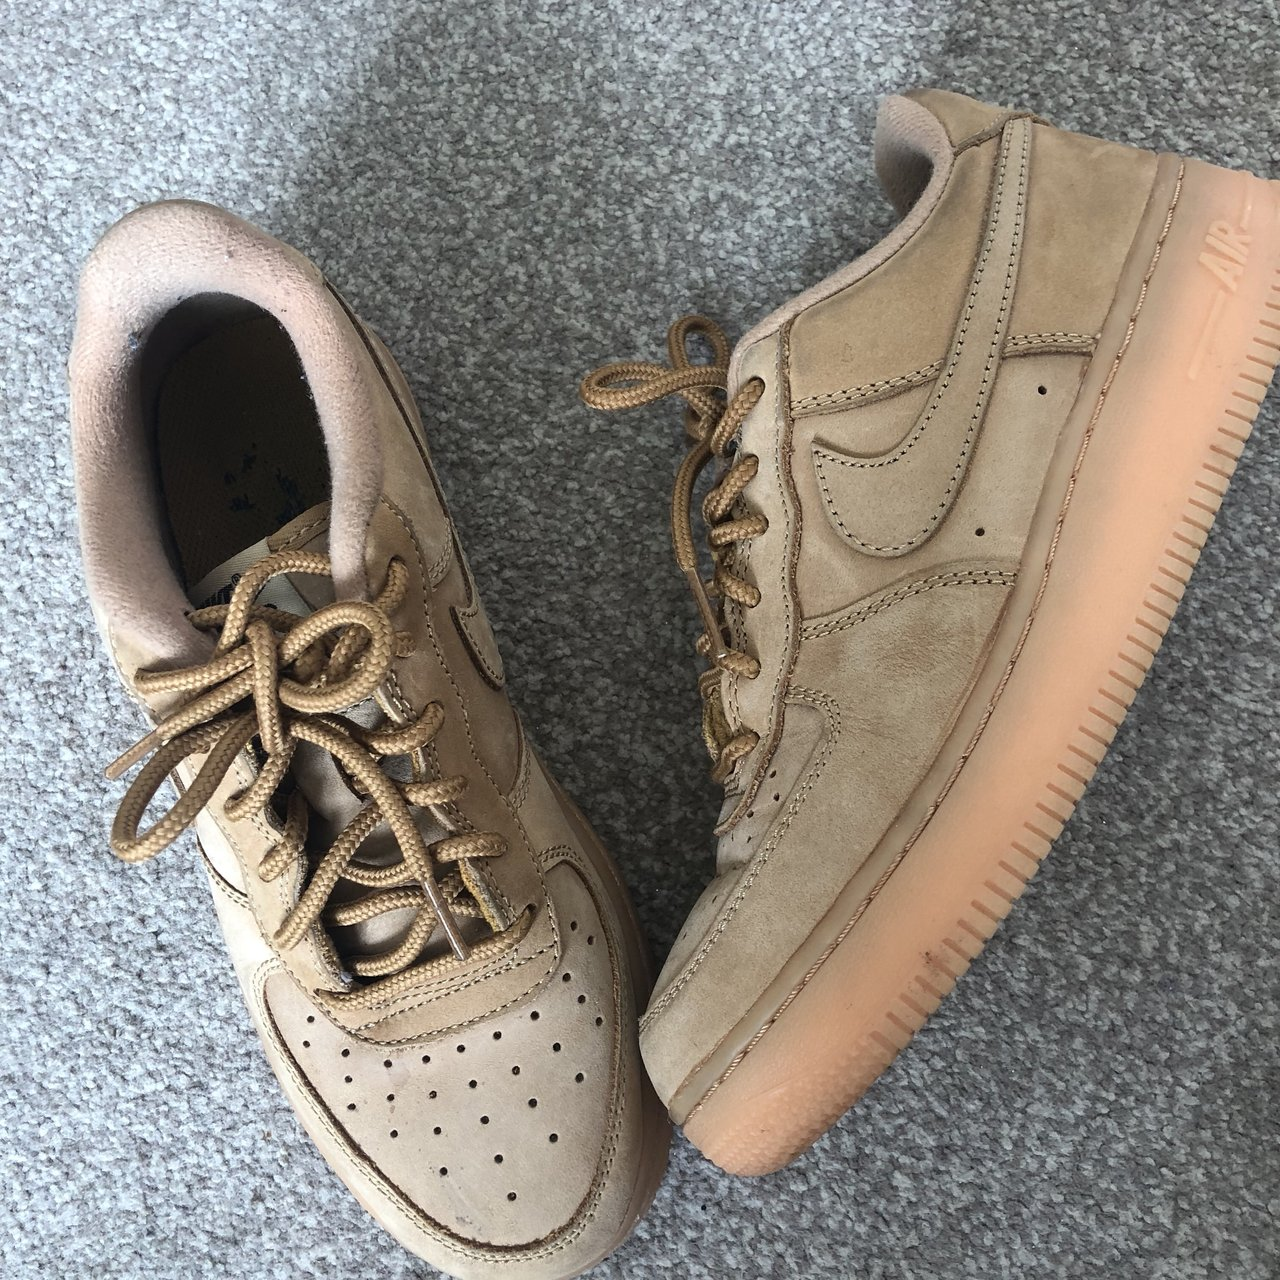 cc40ab21f4b6 Nike Air Force One flax size UK4! Only been worn 3 times so - Depop